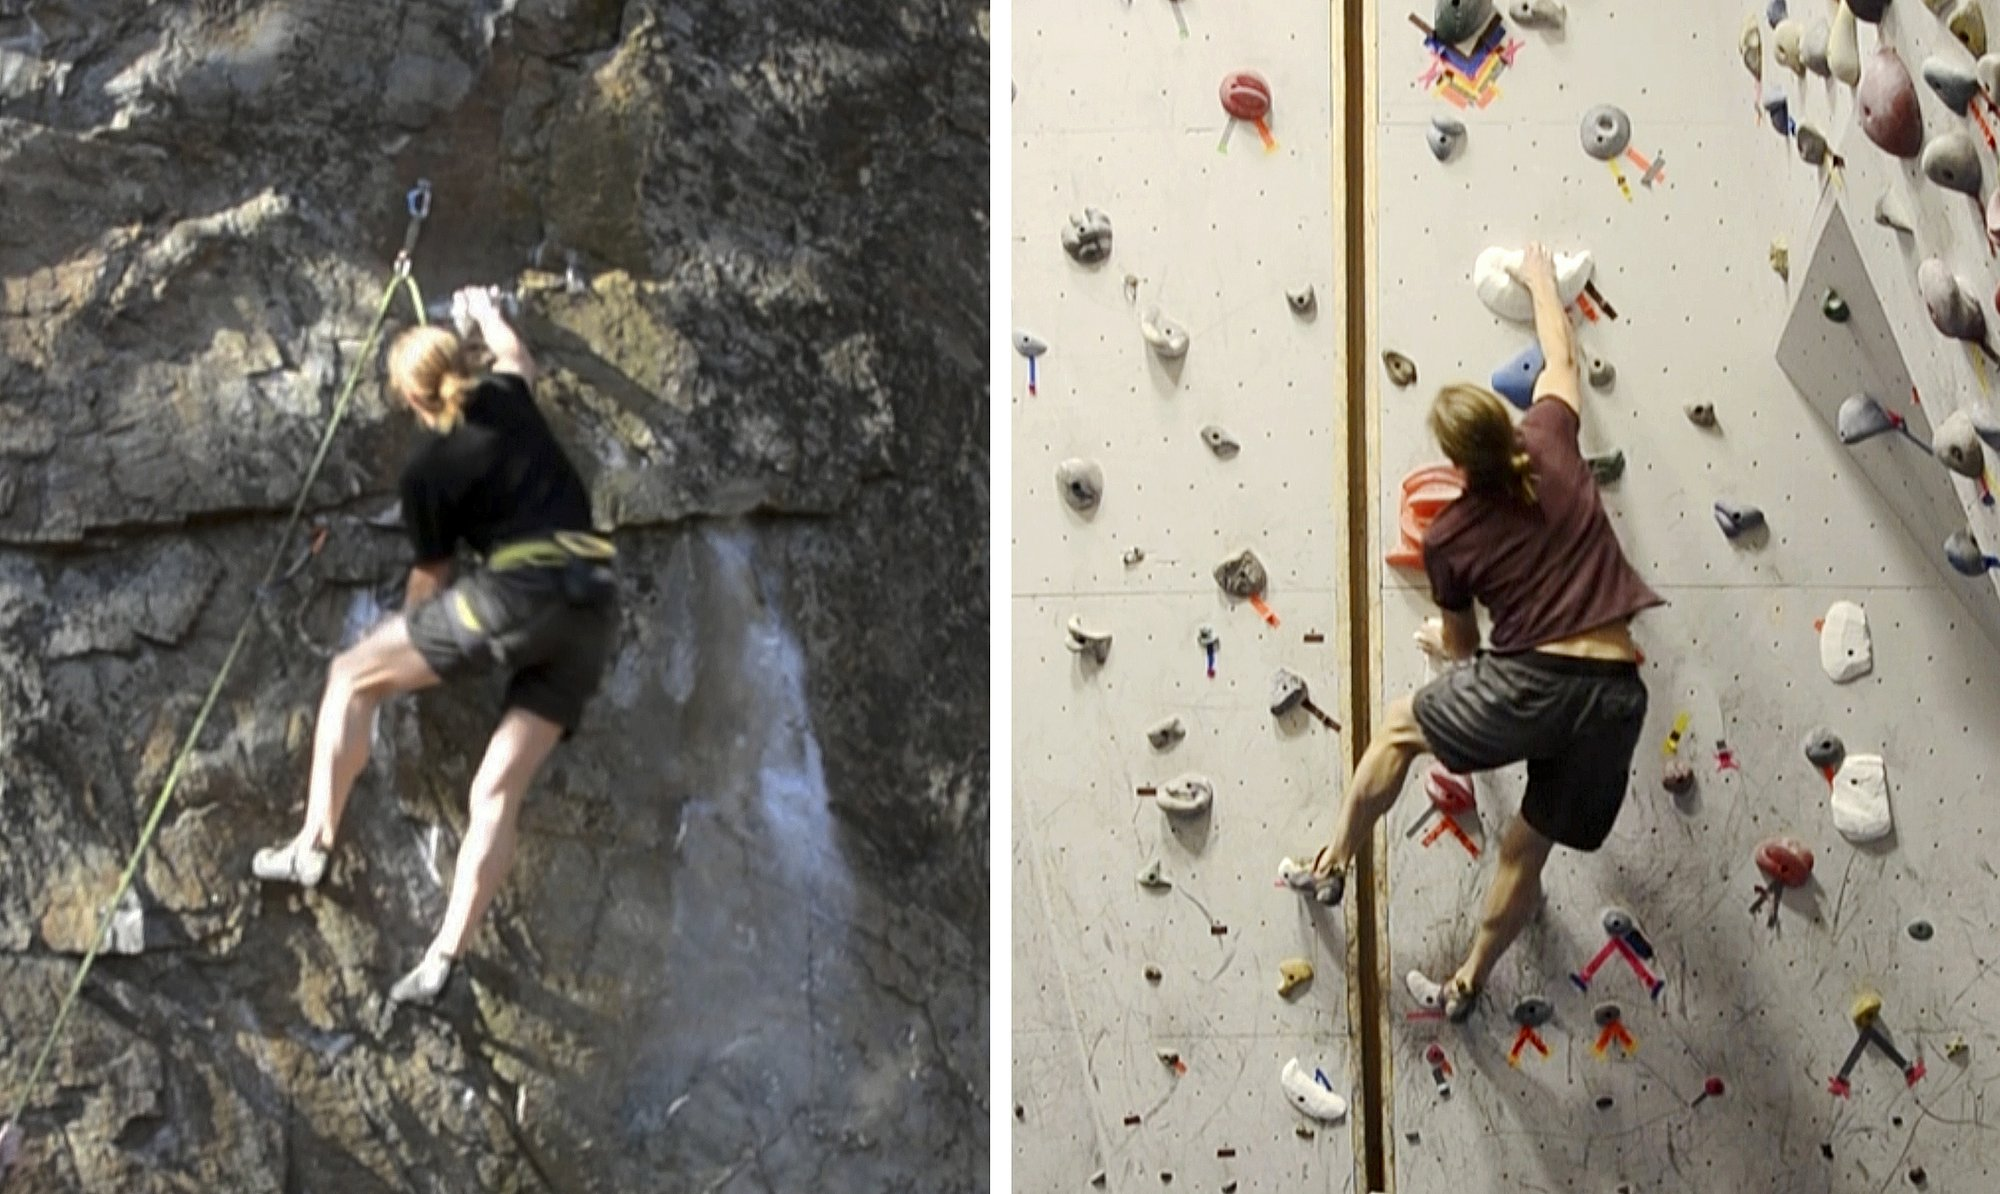 System aims to recreate challenging mountain climbs in gym